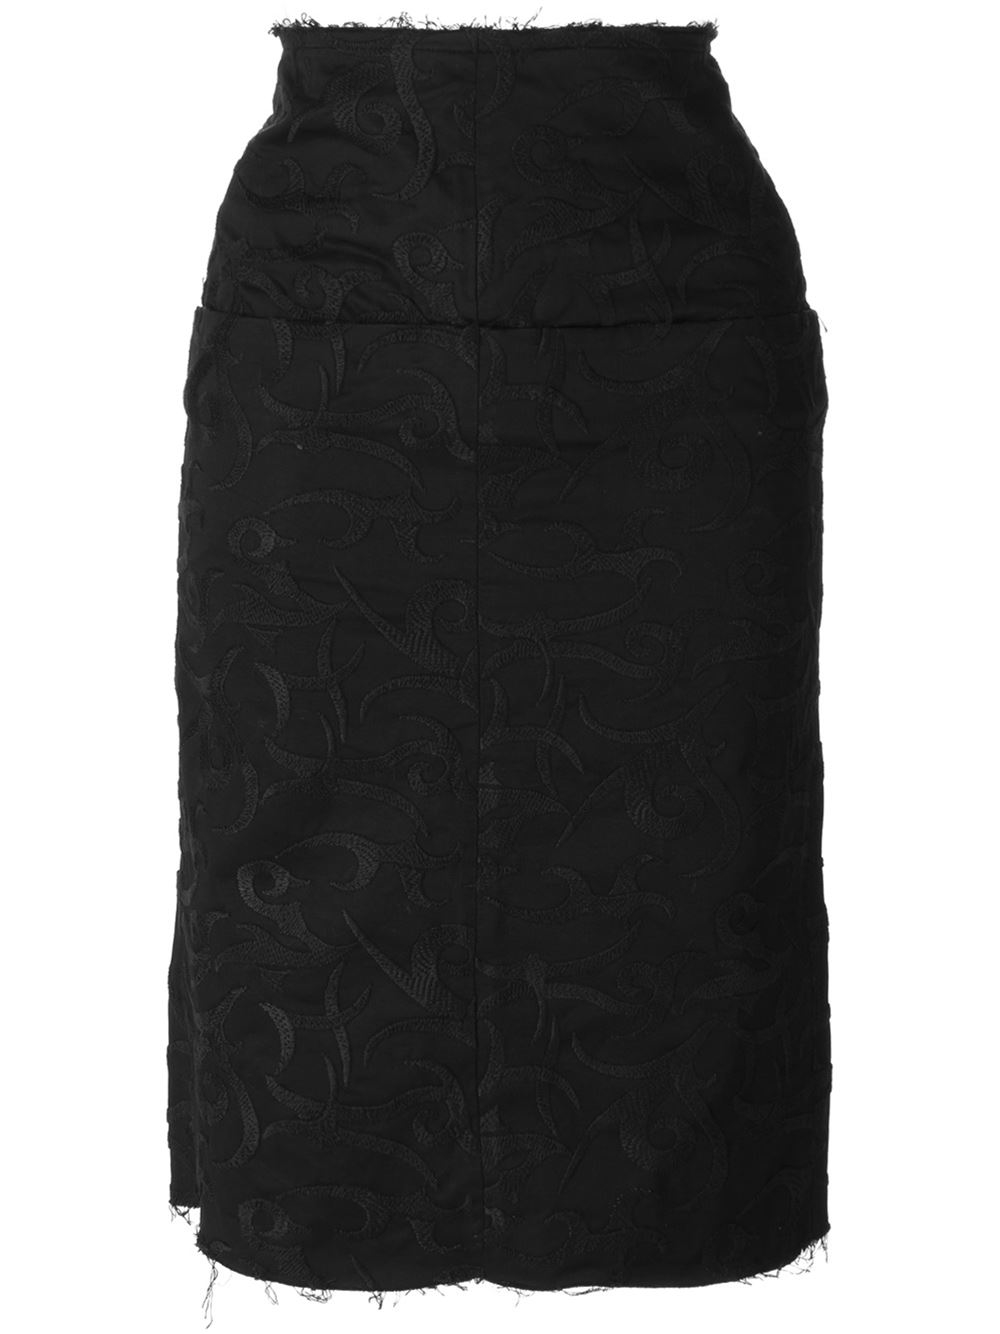 aries embroidered pencil skirt in black lyst